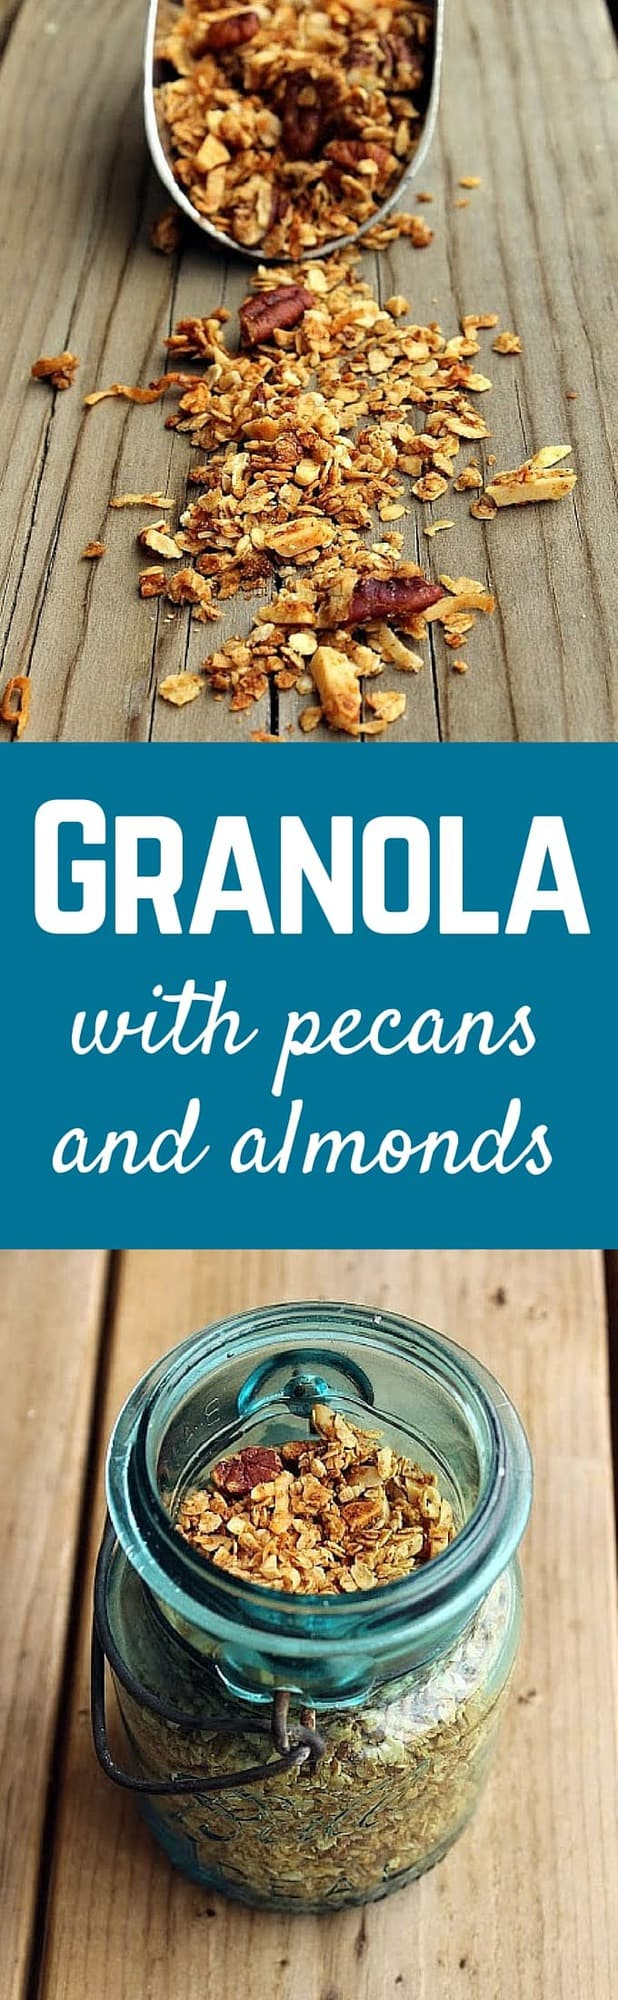 Homemade granola recipe with pecans and almonds gets made on a nearly weekly basis at our house! You won't believe how easy it is to make granola at home. Get the easy recipe on RachelCooks.com.